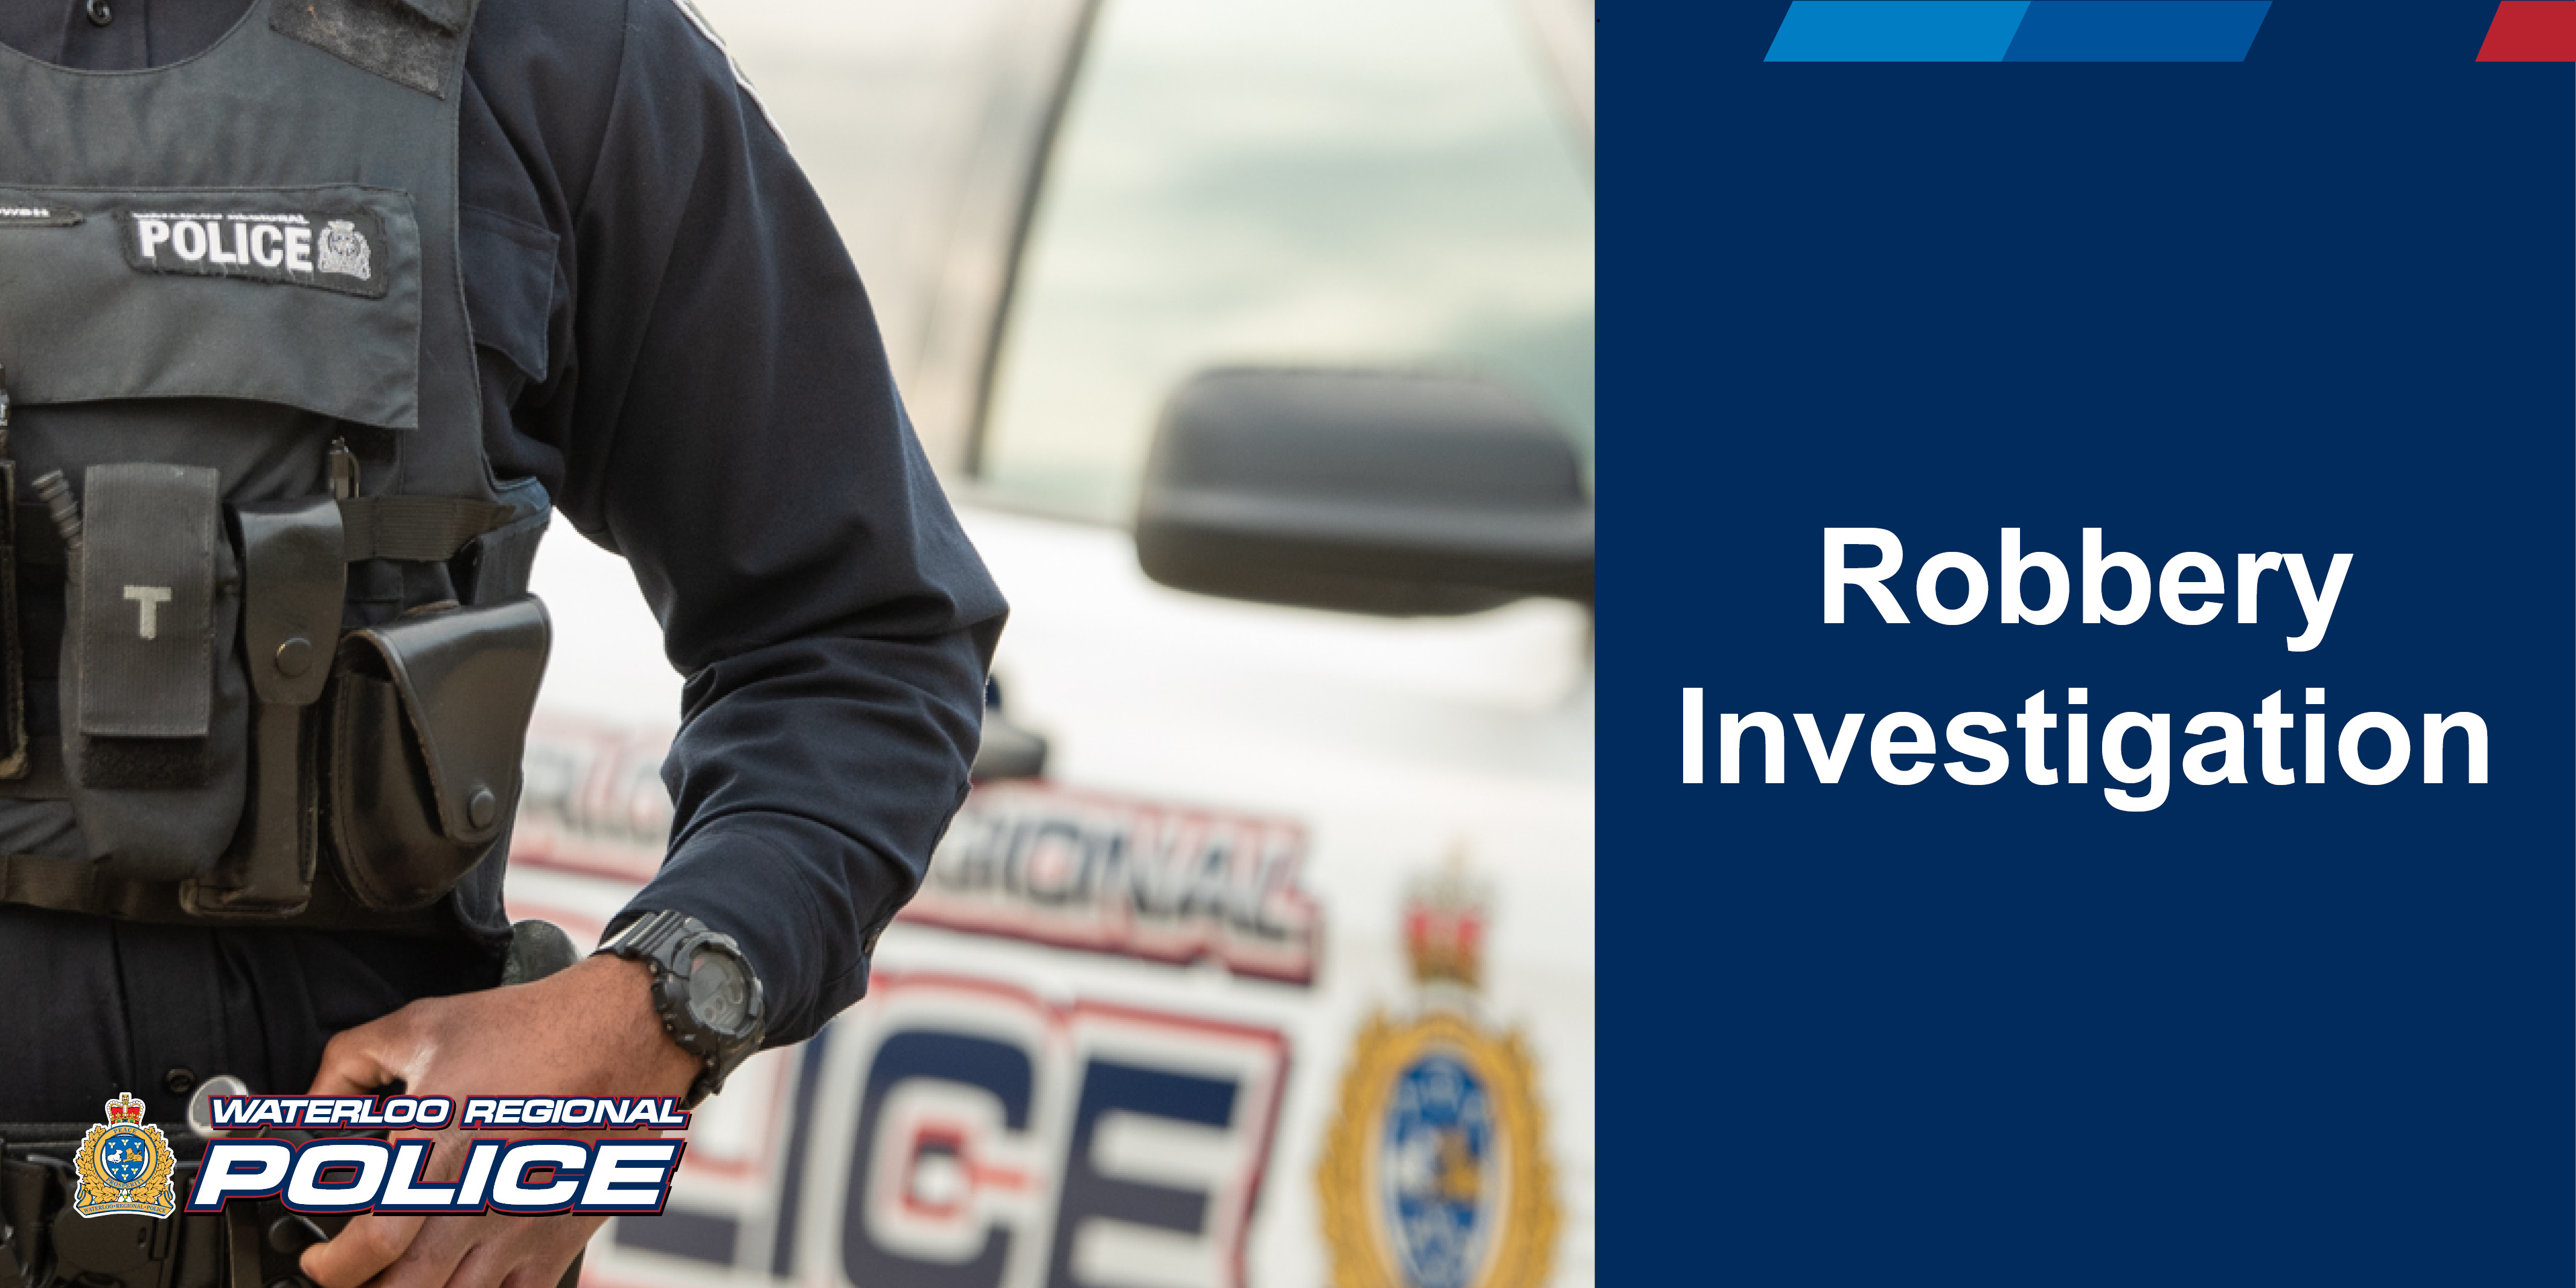 Media Release - robbery shareable